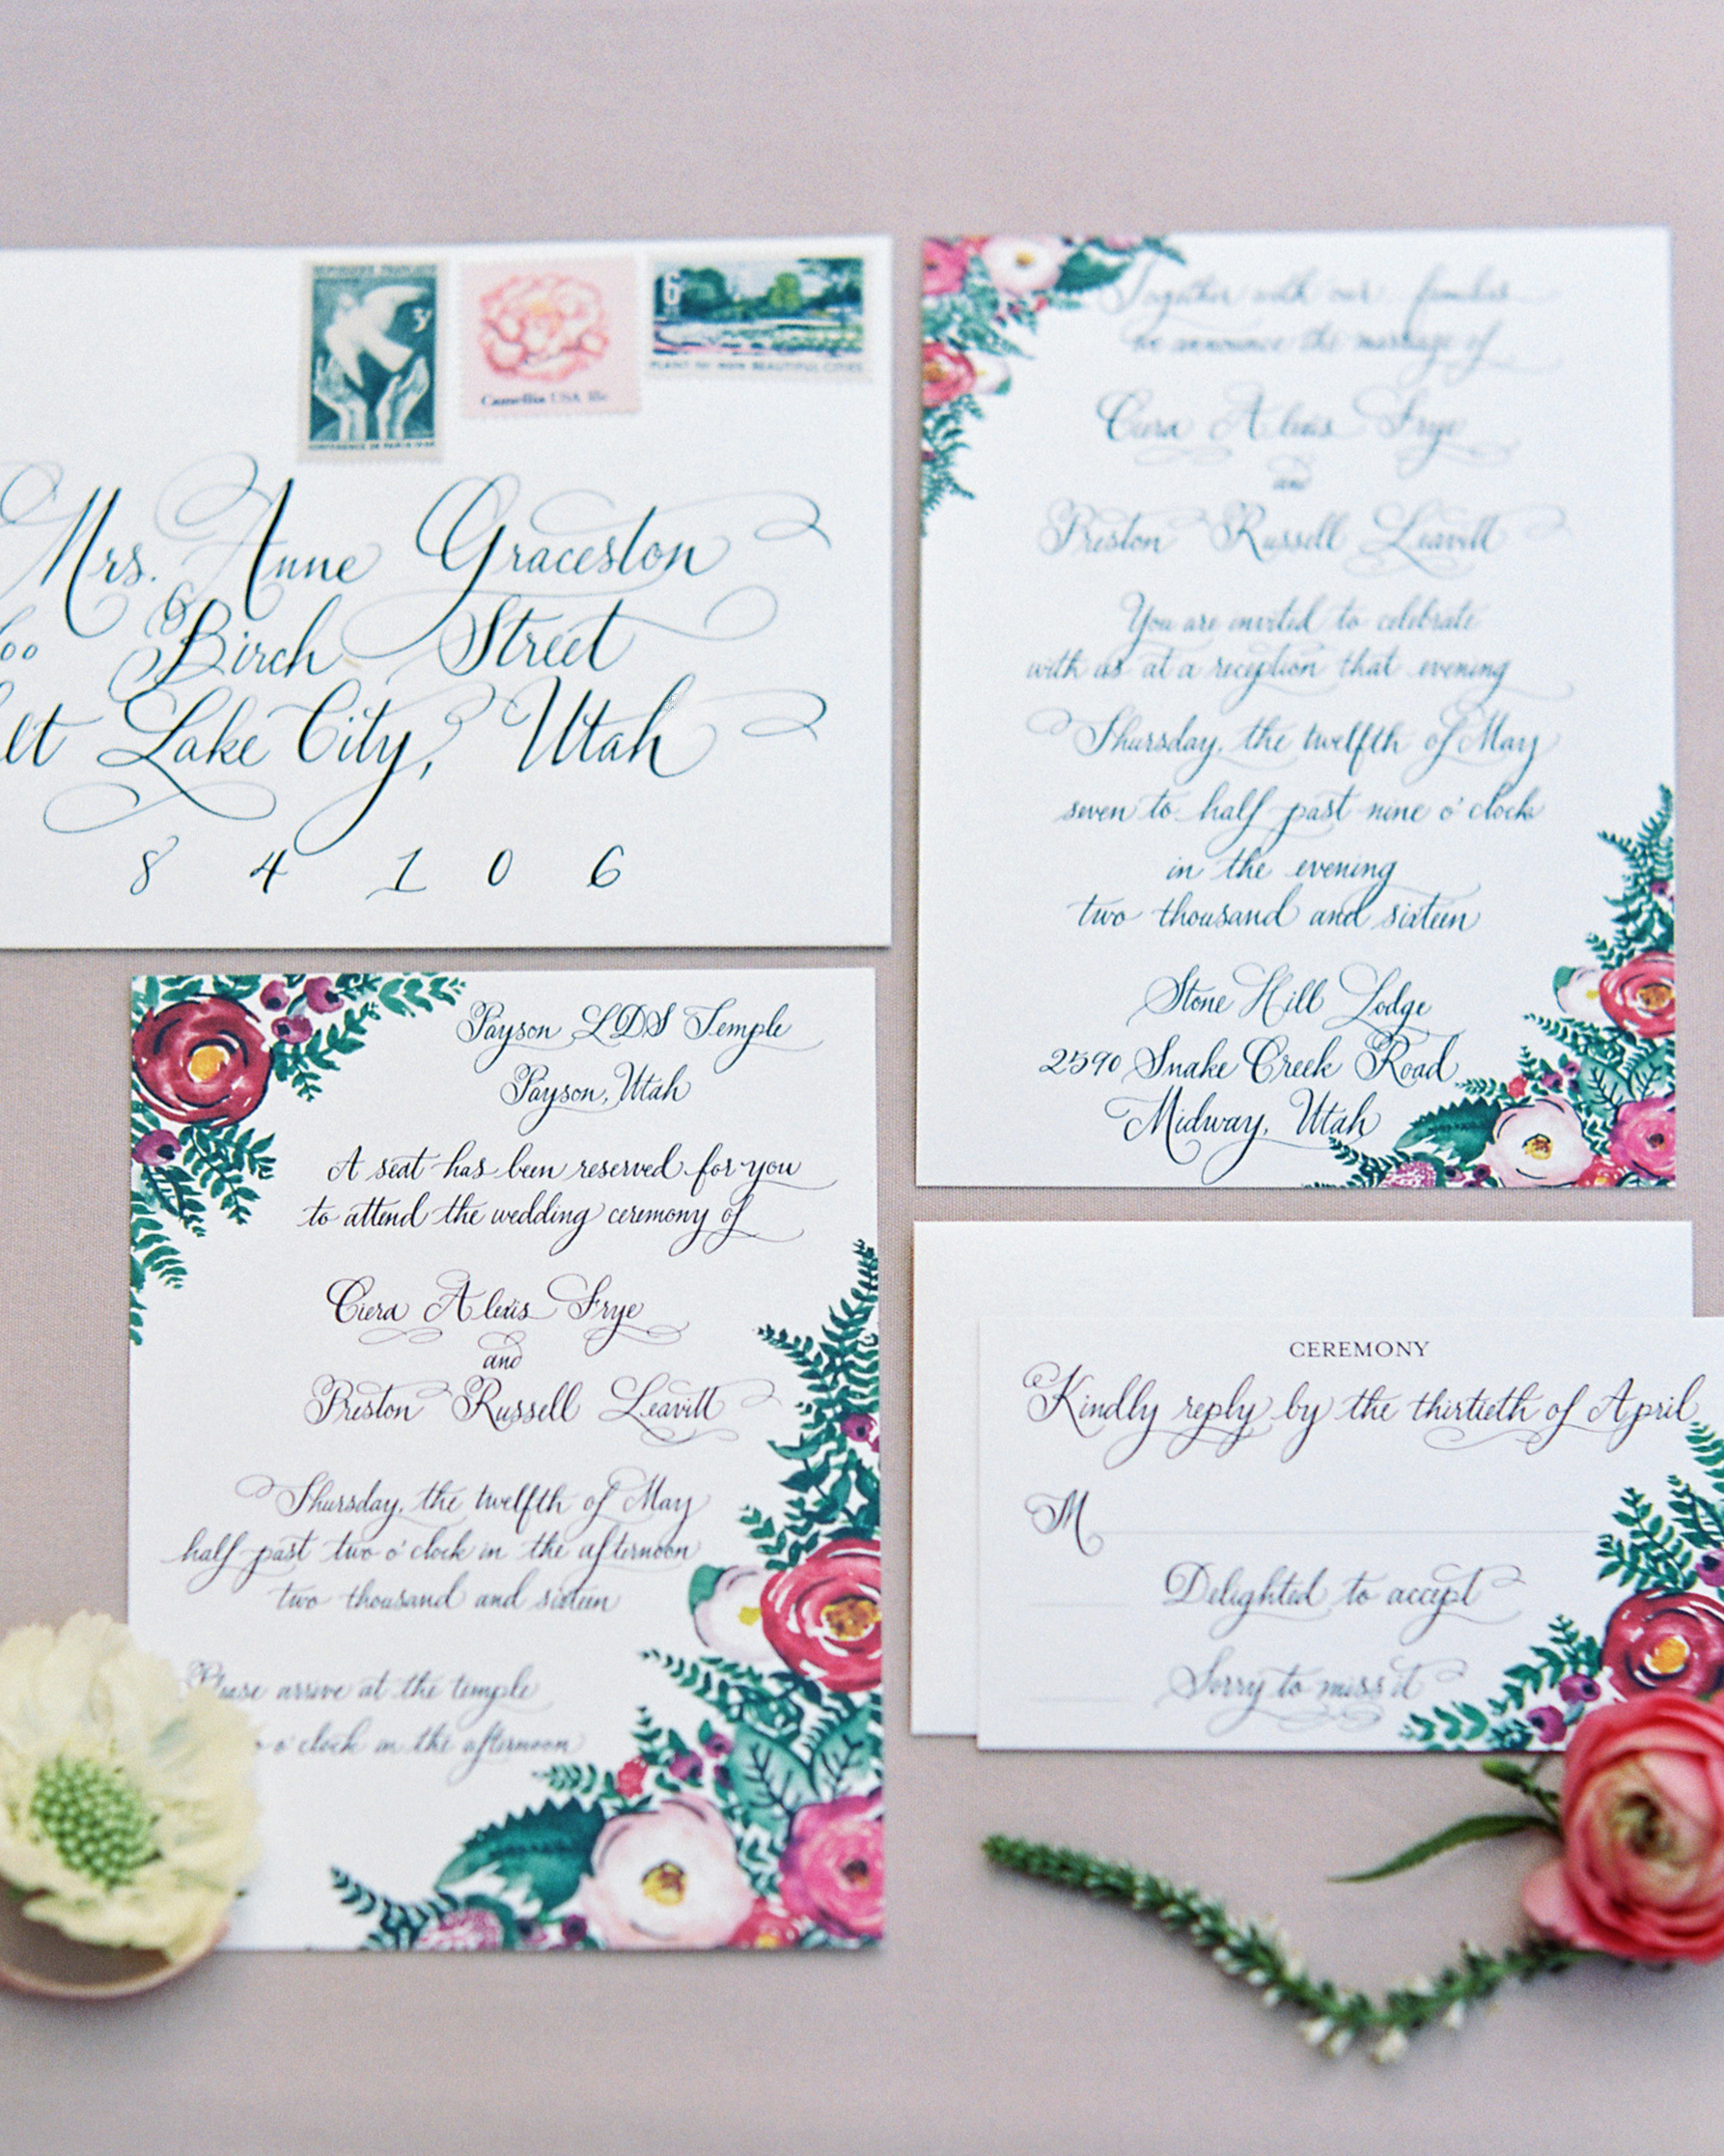 ciera preston wedding invite